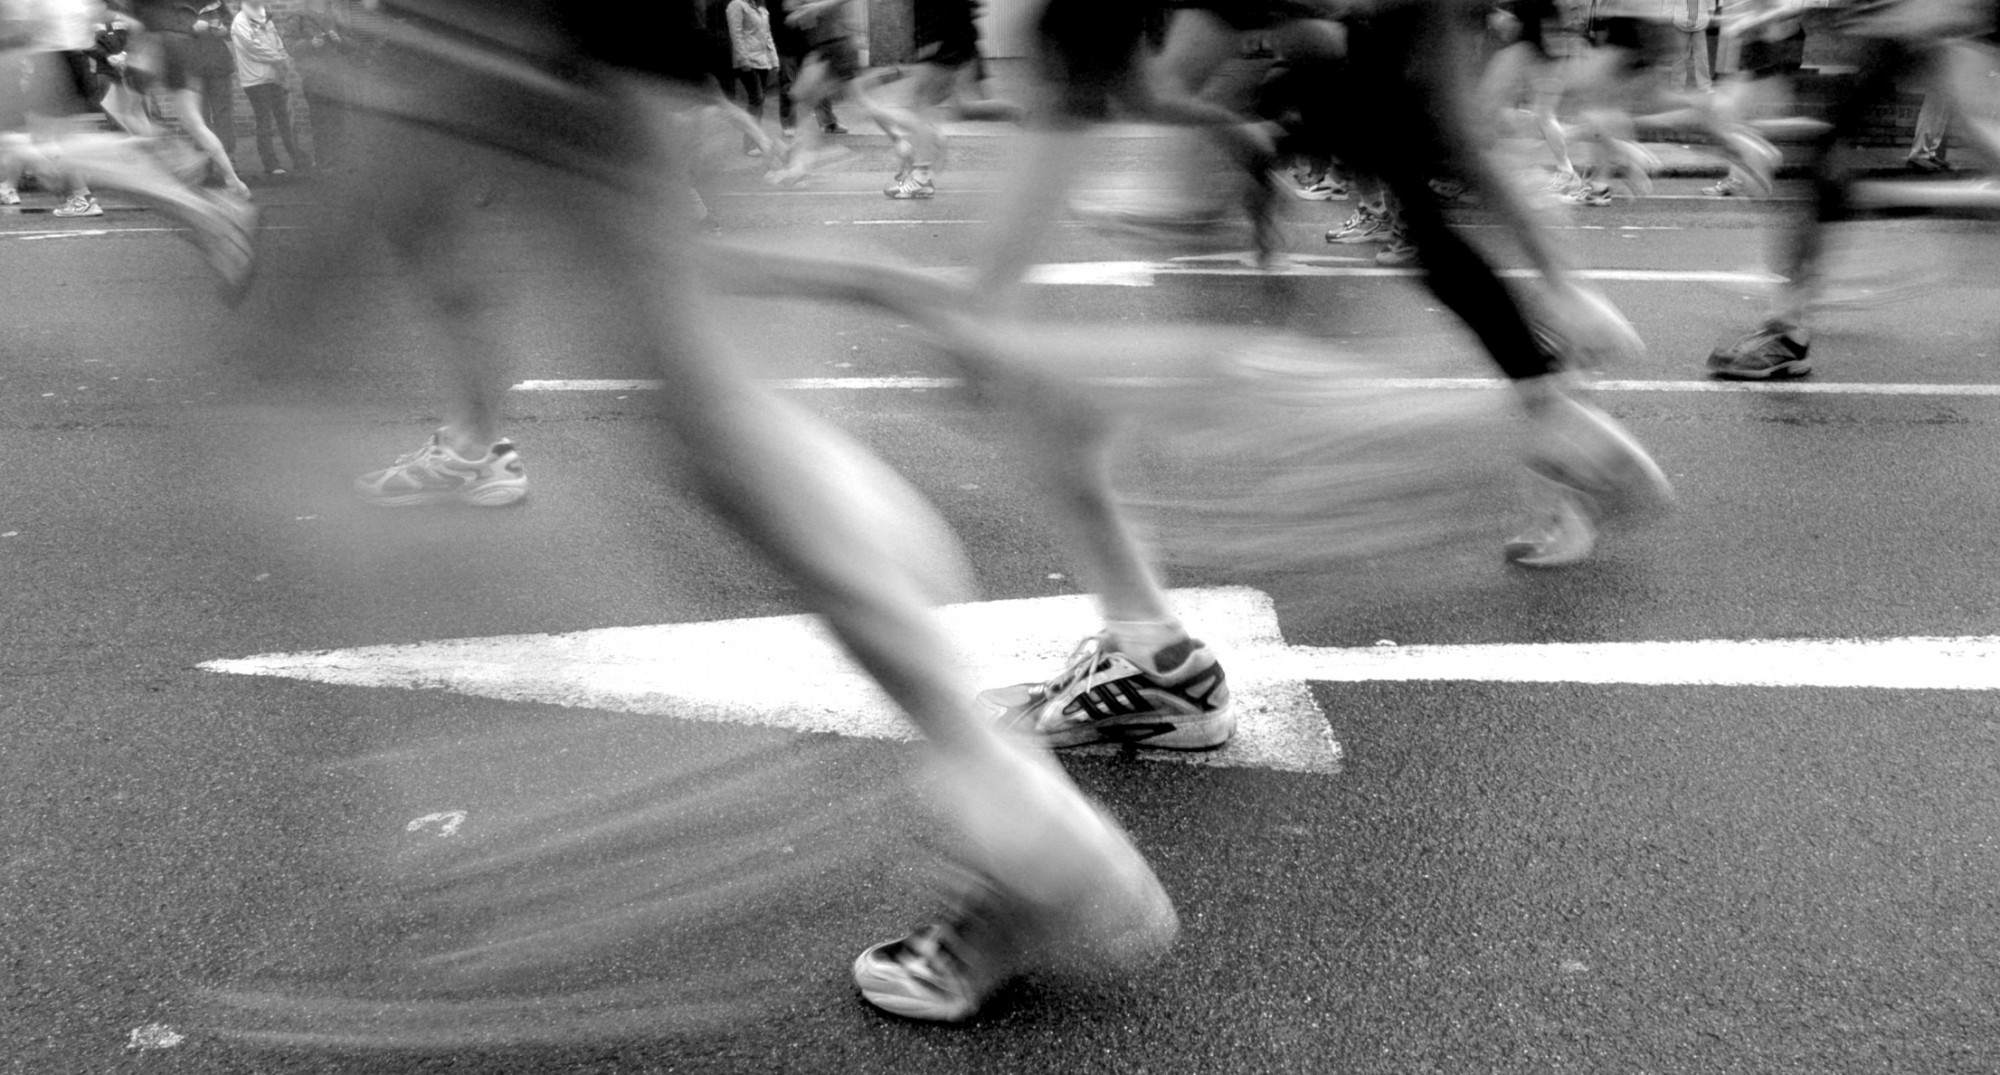 black and white image of runners' legs